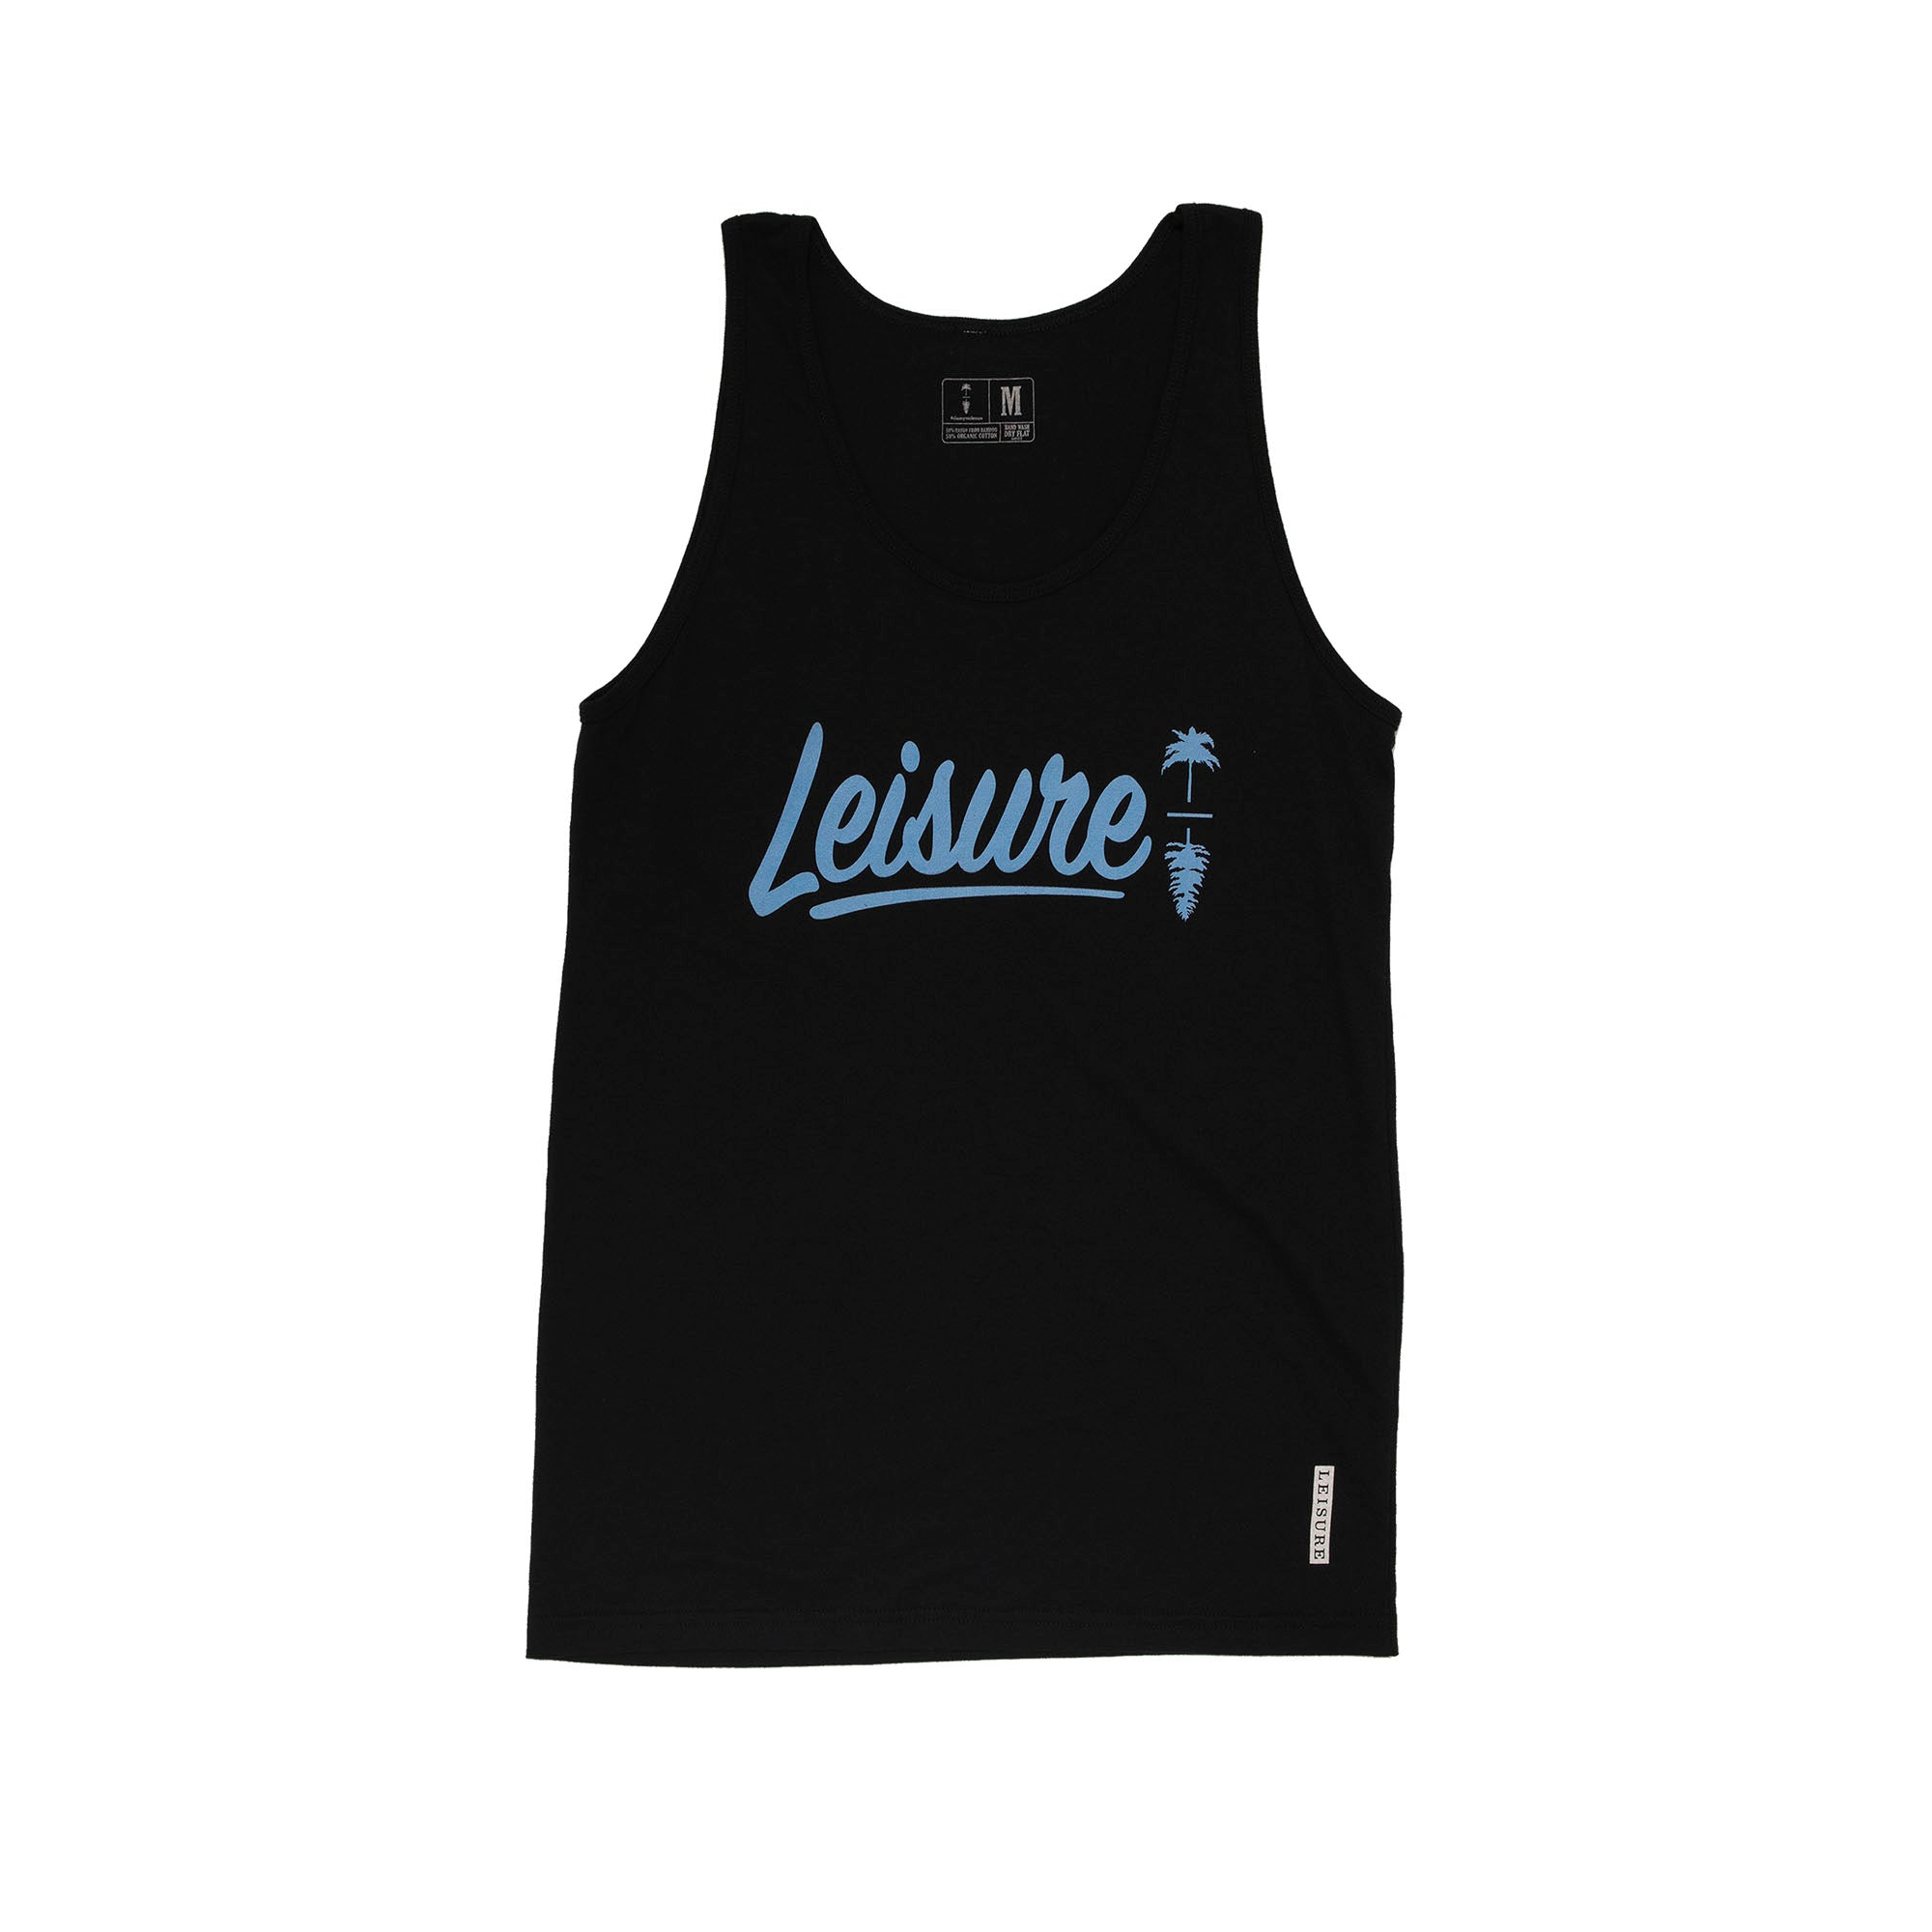 Classic Journal Tank Top